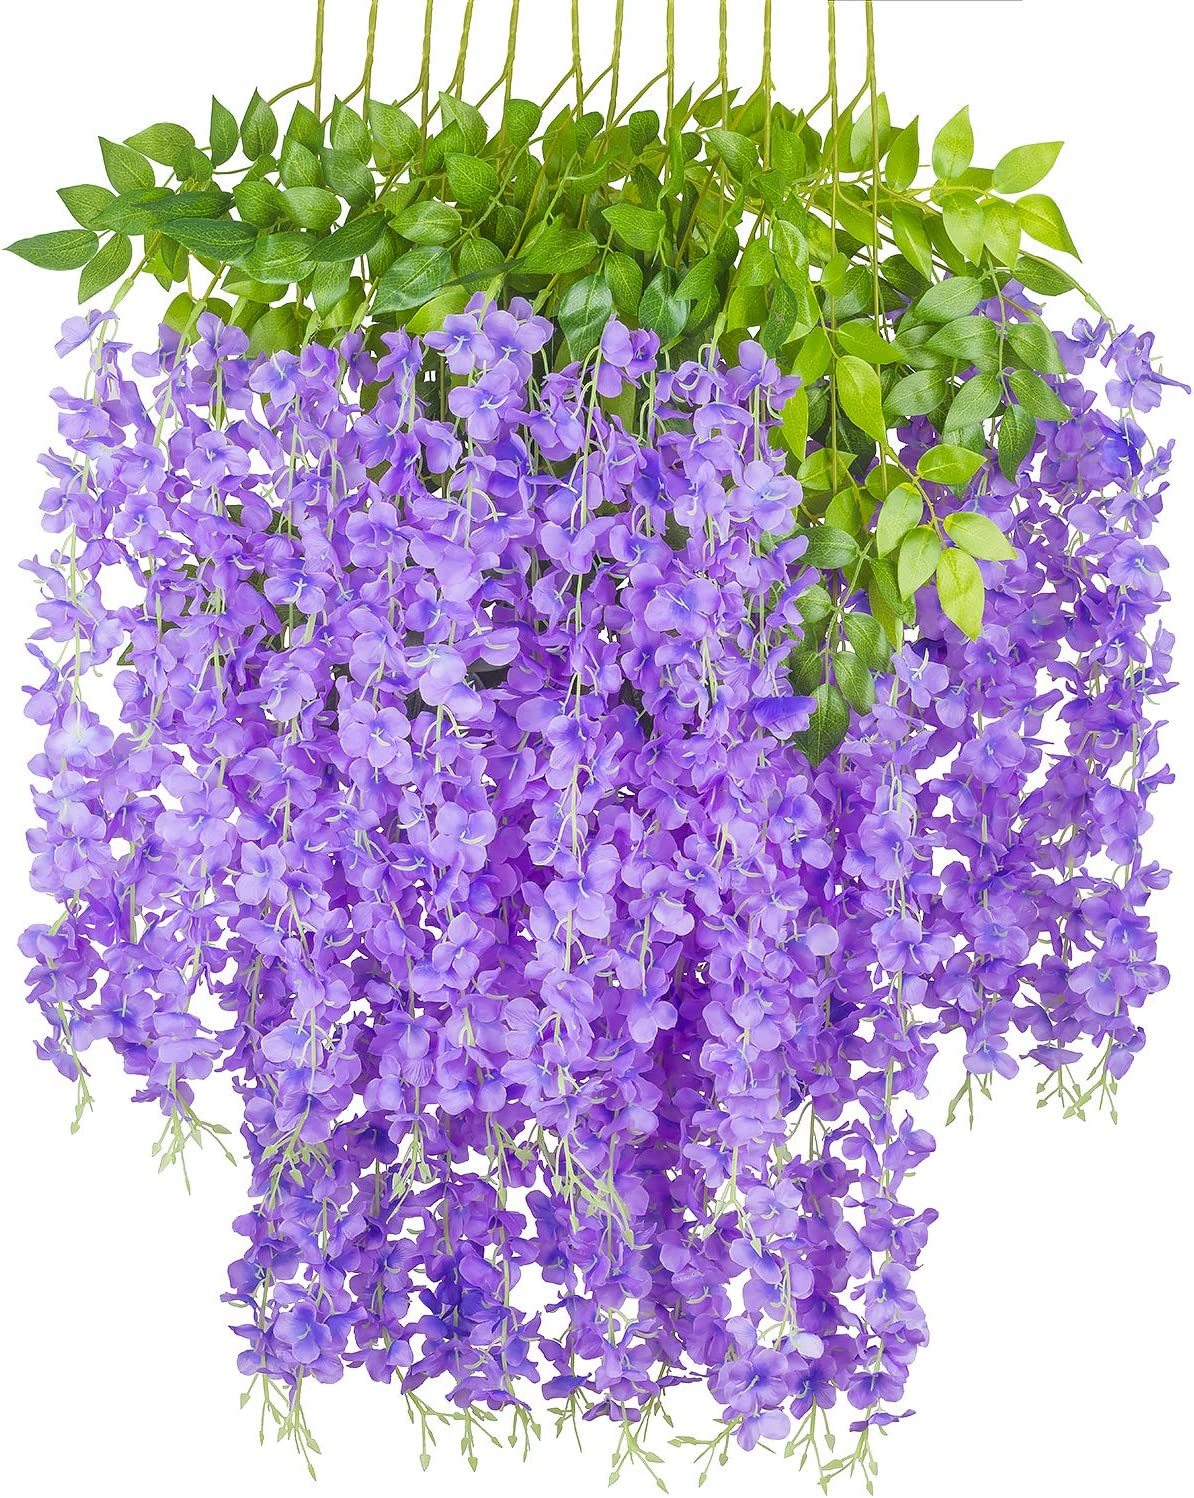 GPARK 12 Pieces Wisteria Artificial Flower 45 inch Bushy Silk Vine Ratta Hanging Garland Hanging for Wedding Party Garden Outdoor Greenery Office Wall Decoration Purple